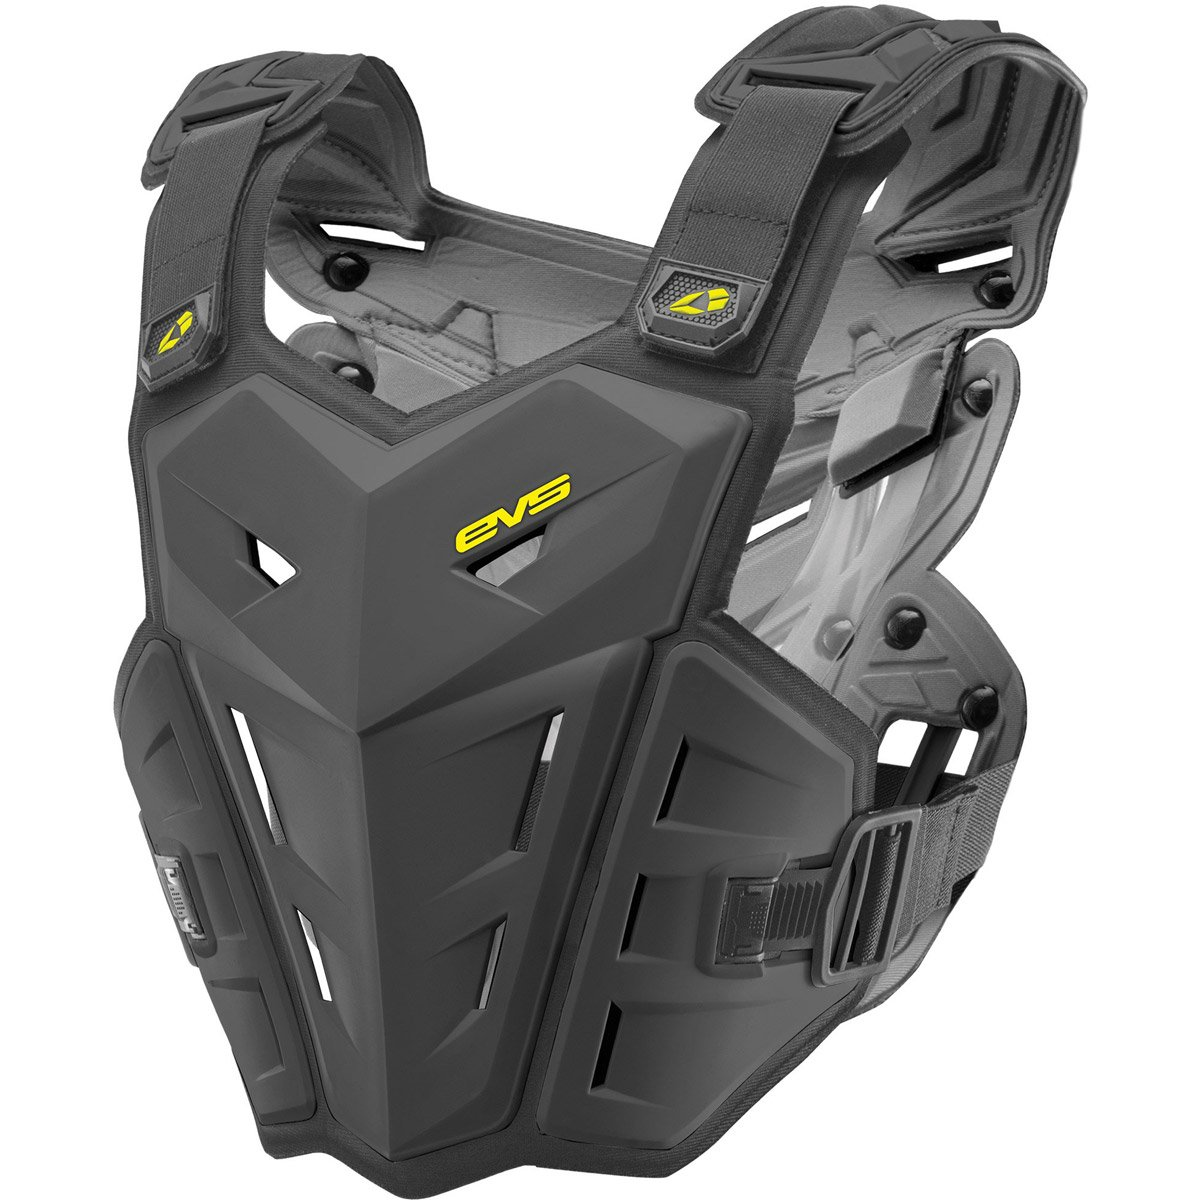 EVS Sports F1 Roost Guard (Black, Large/X-Large)